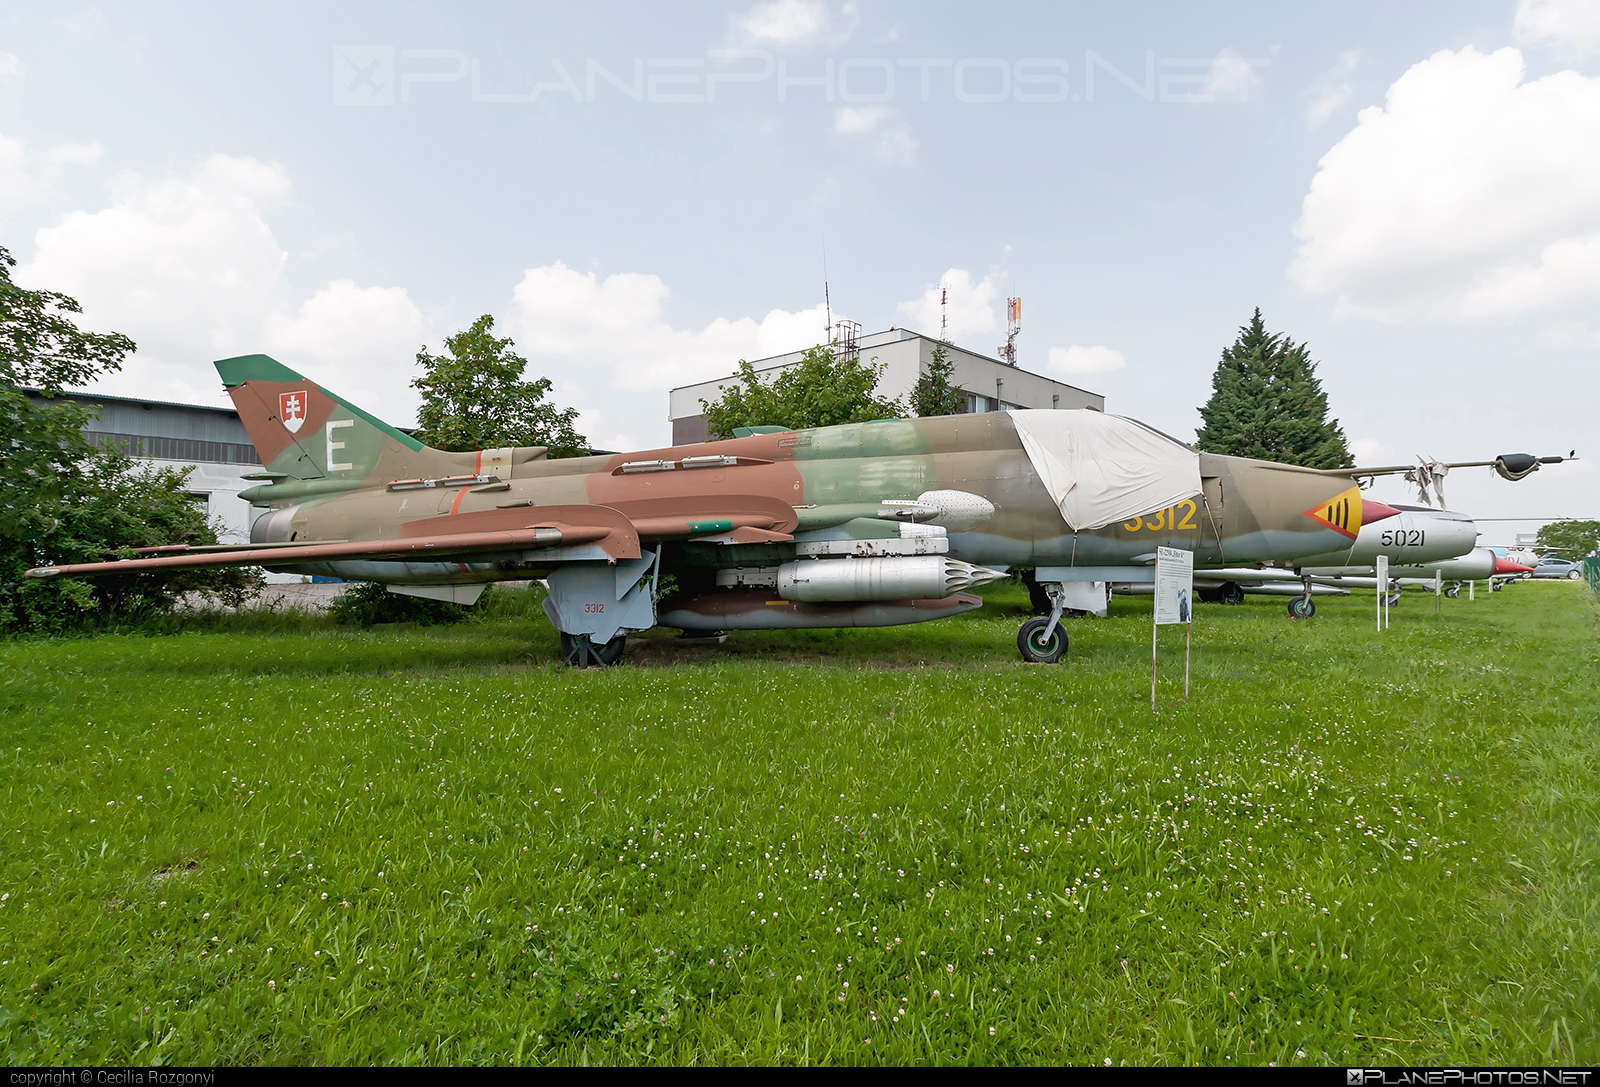 Sukhoi Su-22M4 - 3312 operated by Vzdušné sily OS SR (Slovak Air Force) #slovakairforce #sukhoi #vzdusnesilyossr